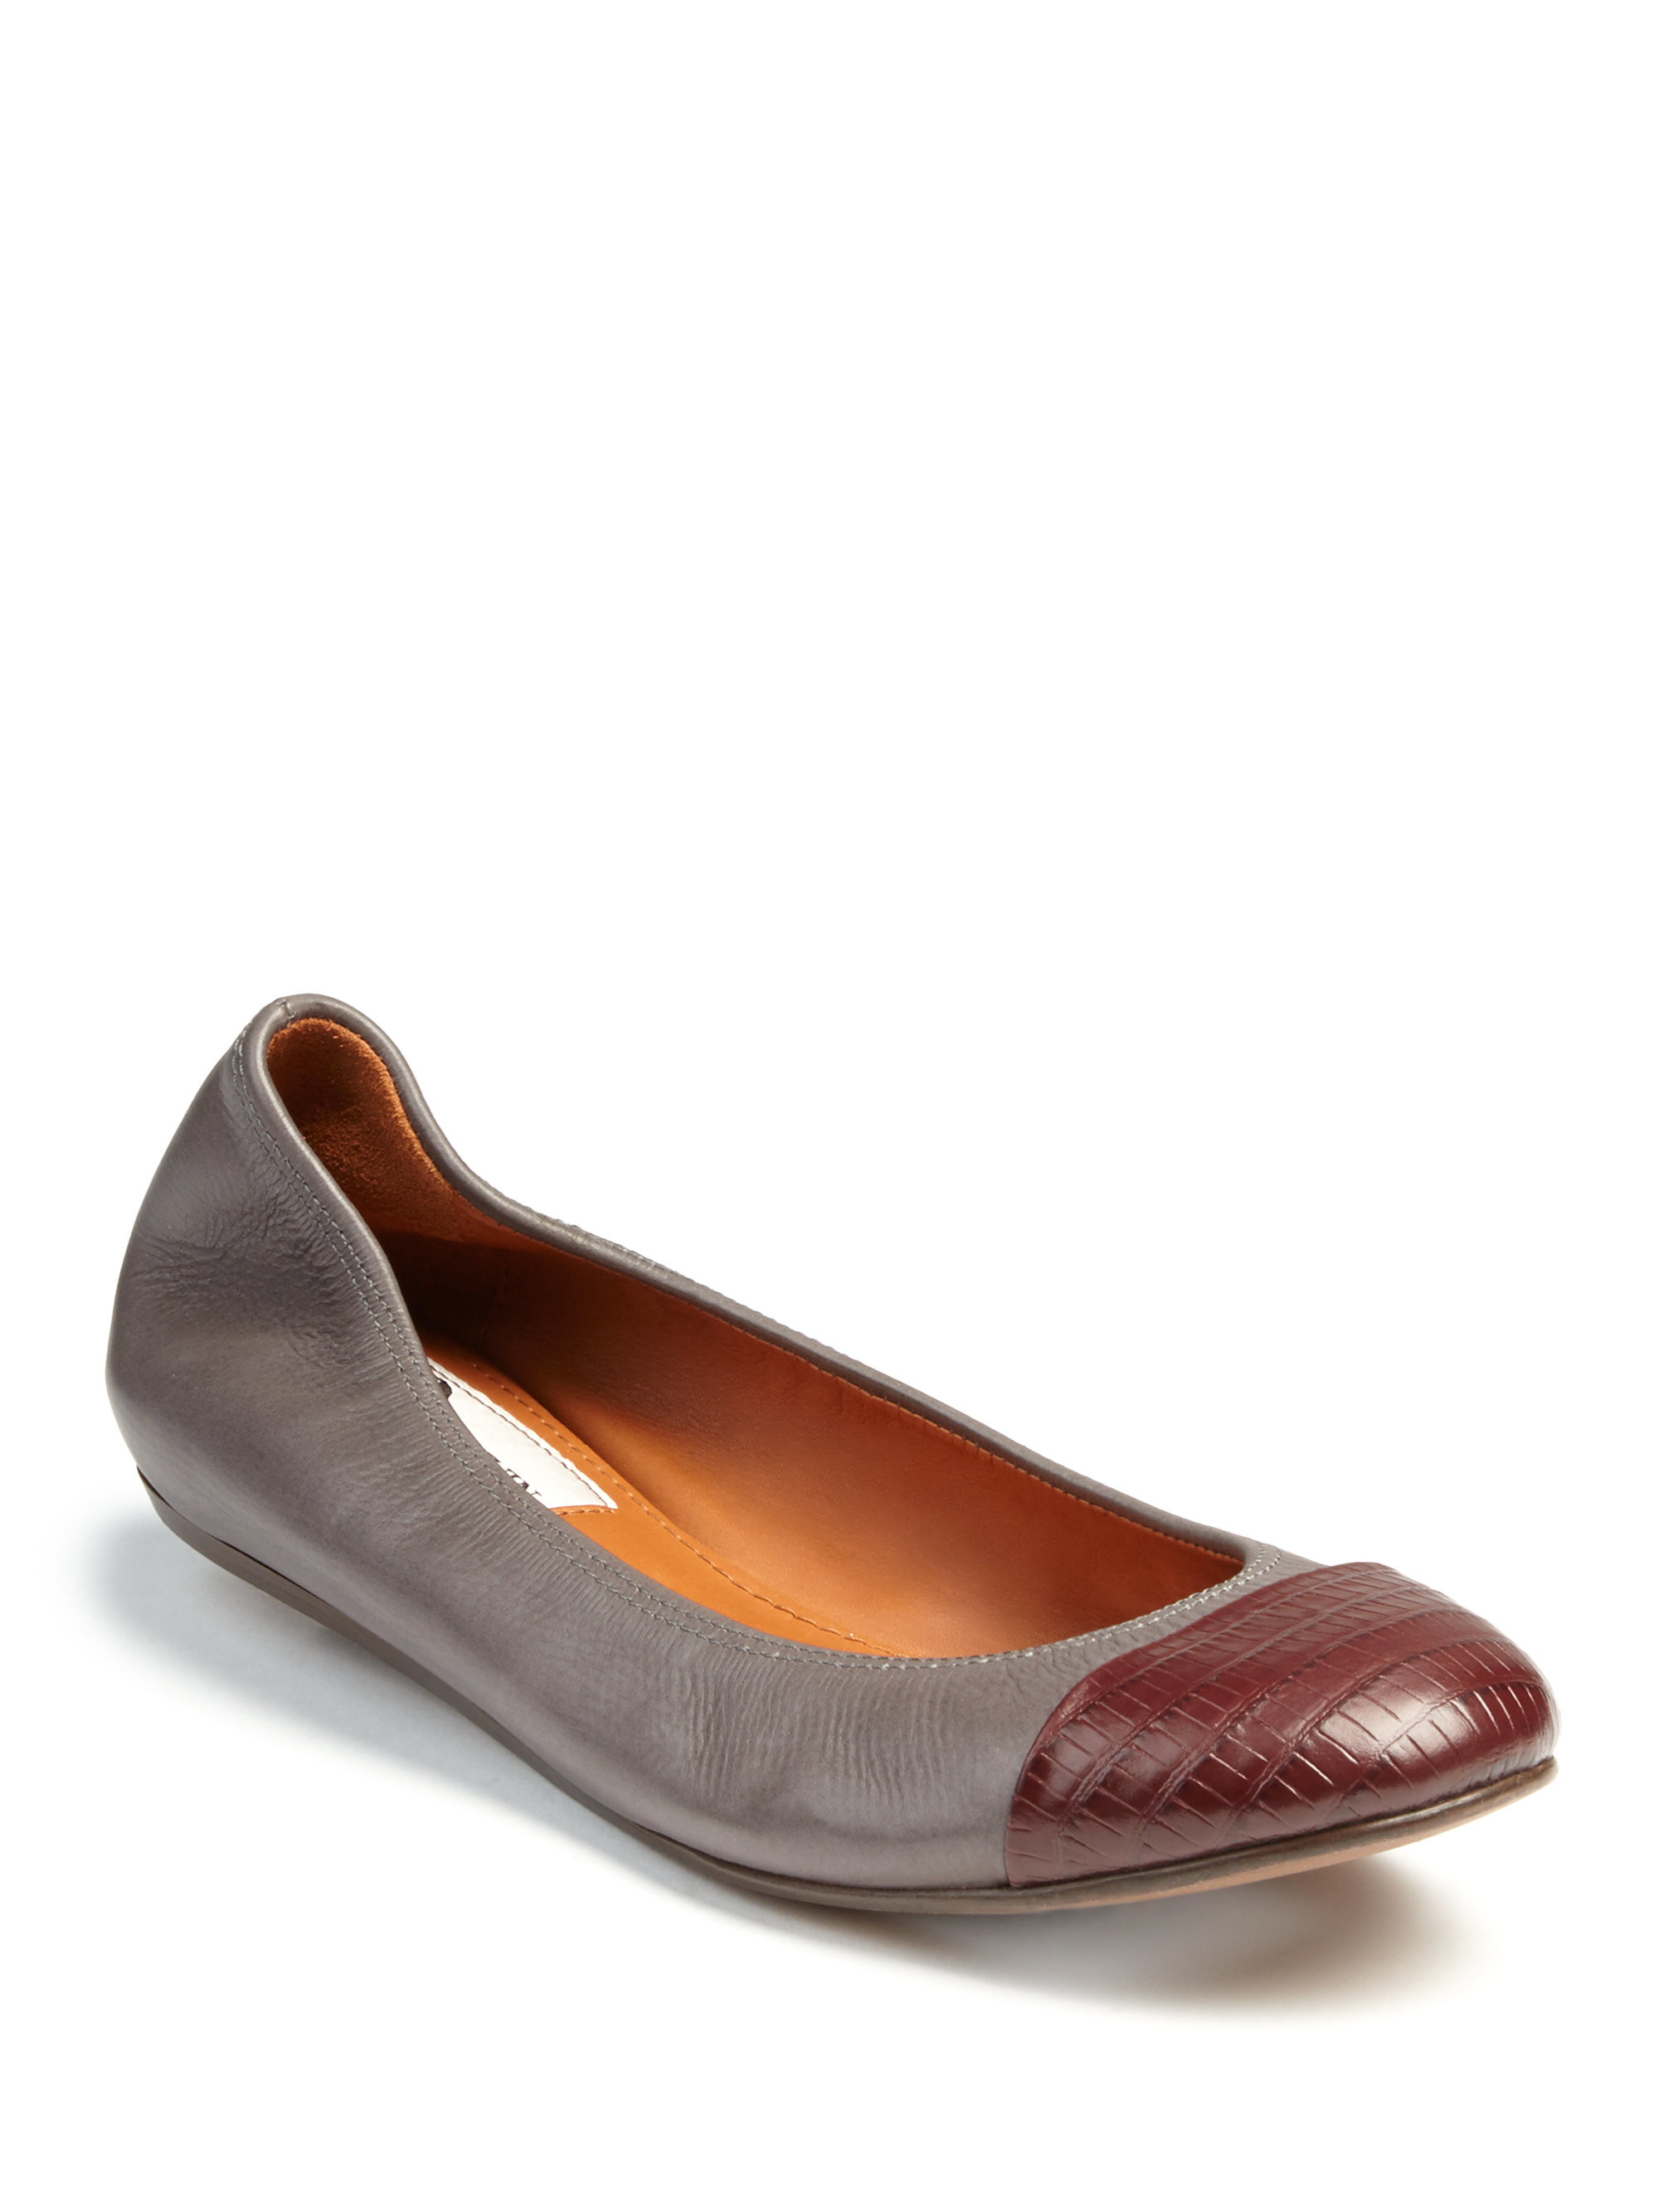 clearance tumblr Lanvin Embossed Ballet Flats cheap sale sale 8HJHiIG